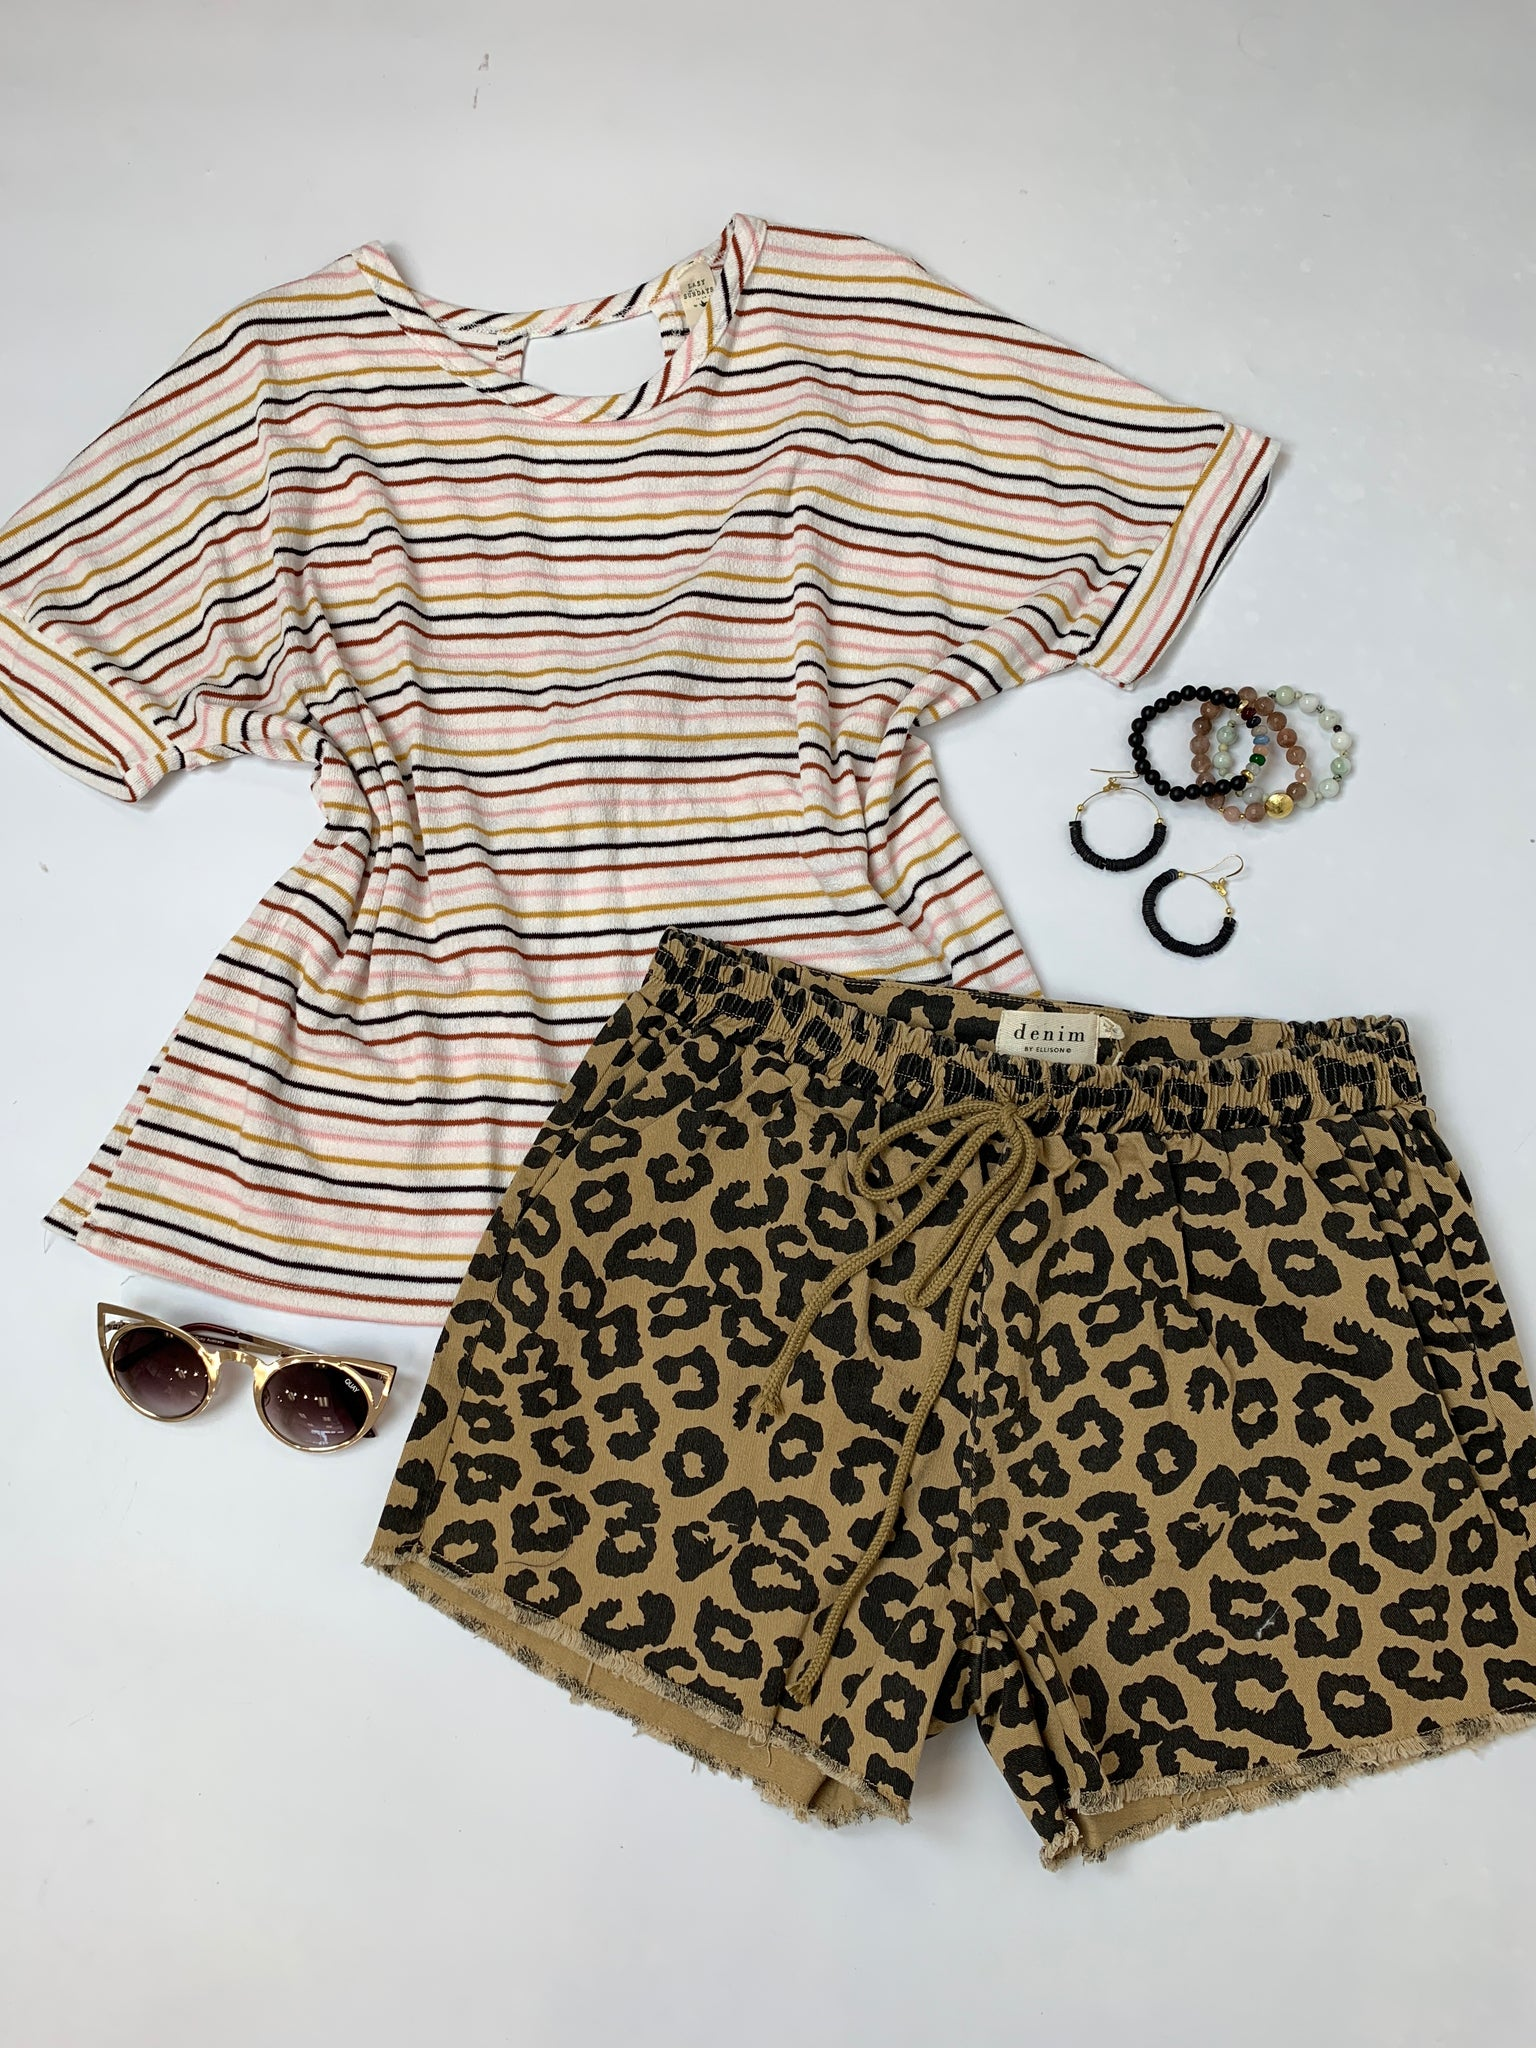 Stripped shirt, cheetah print shorts, beaded jewelry and sunglasses styled by SoSis in Port Allen, LA